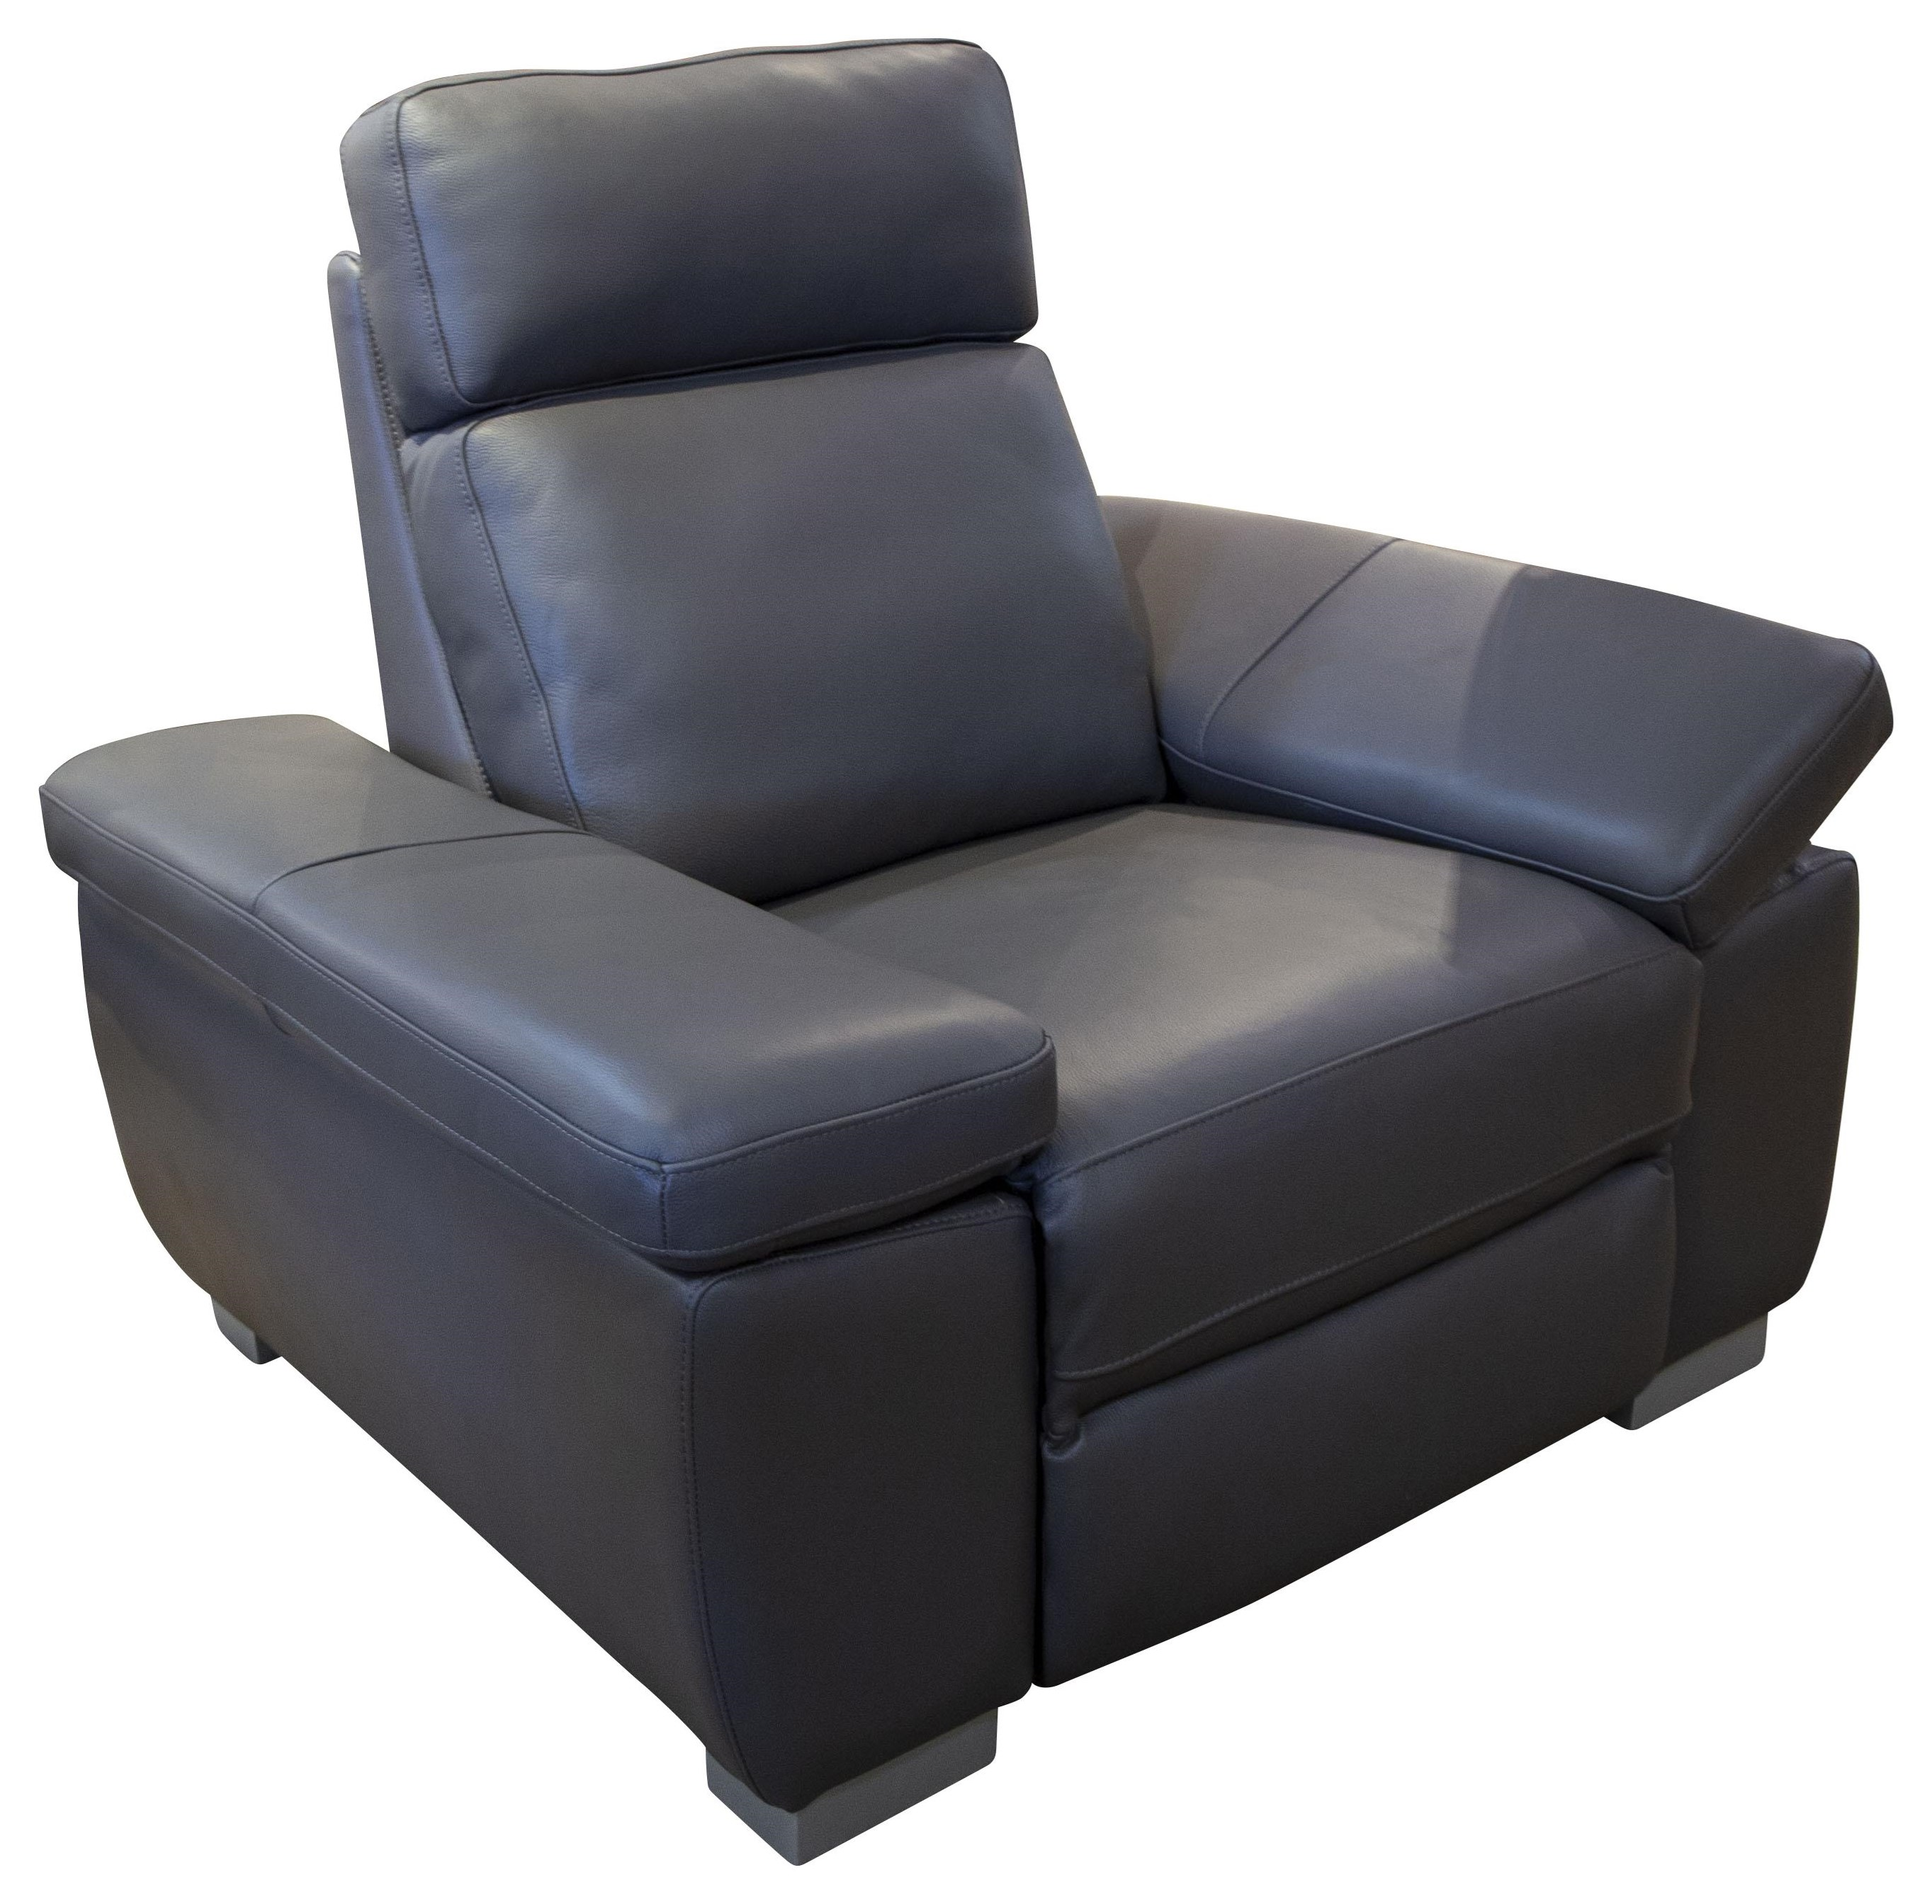 Jove Jove Power Leather Recliner by Abbyson at Morris Home